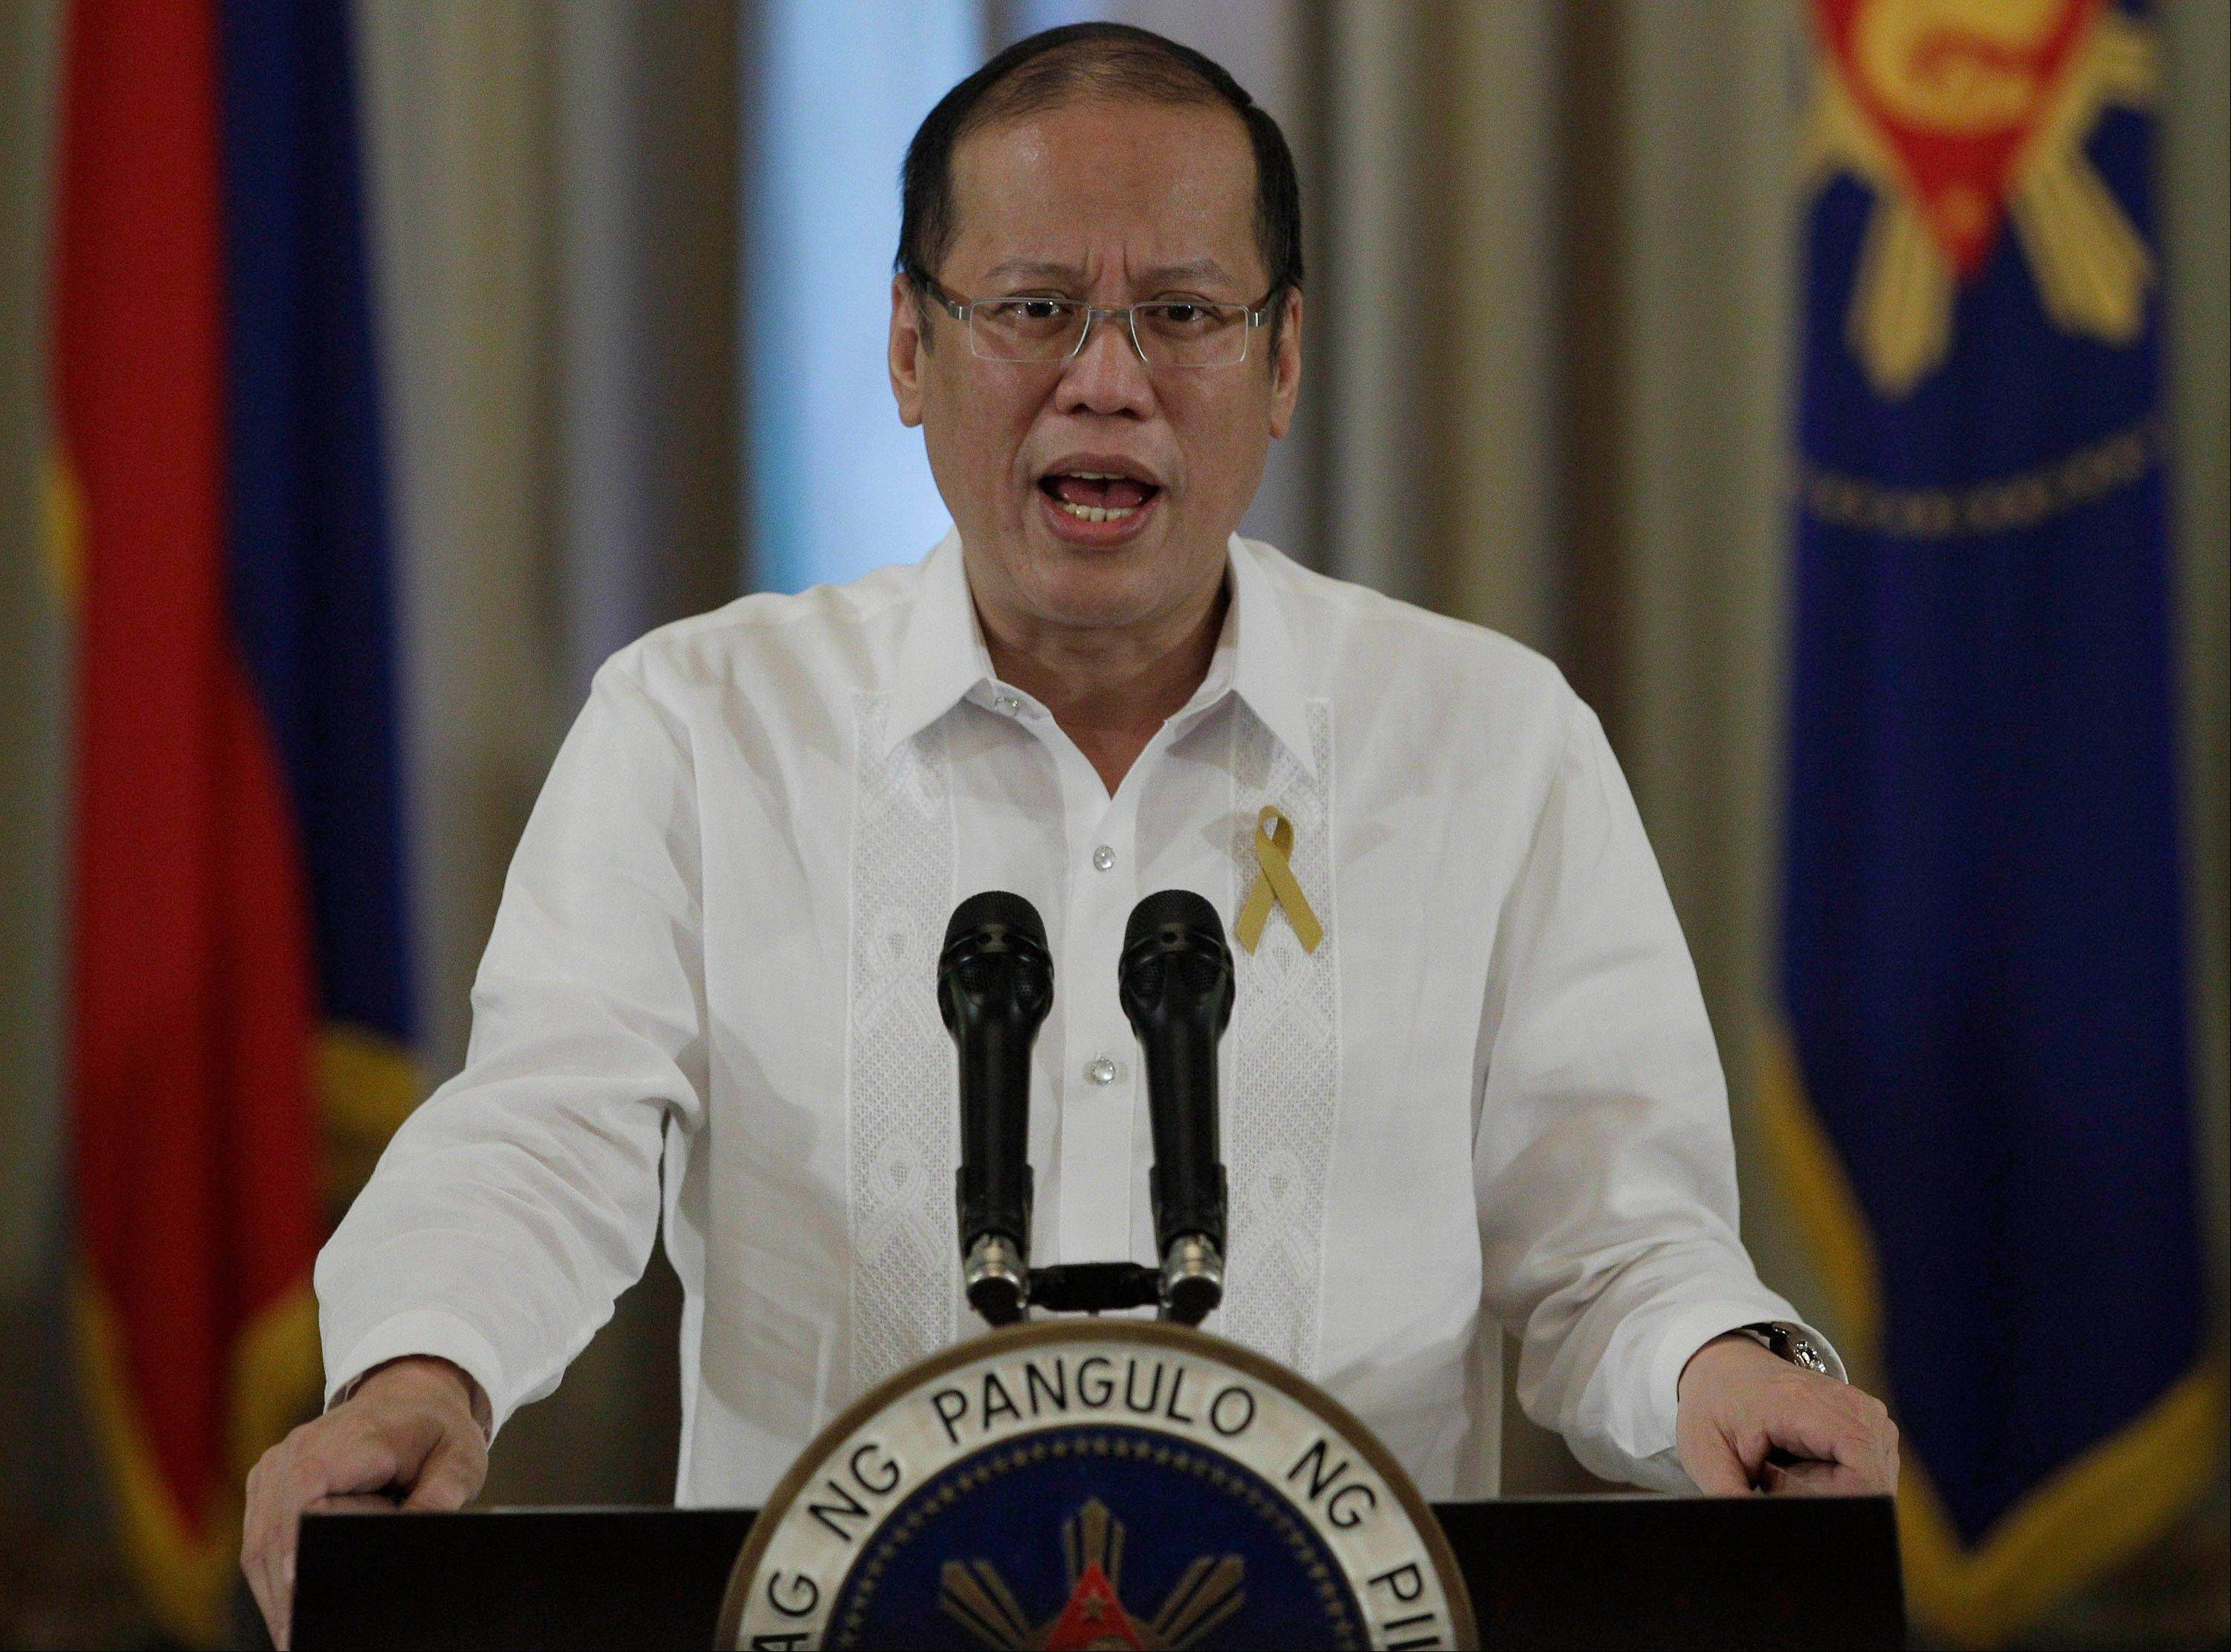 Philippine President Benigno Aquino III makes an announcement on national television Sunday at the Malacanang presidential palace in Manila. Aquino said Sunday that his government has reached a preliminary peace agreement with the nation's largest Muslim rebel group.